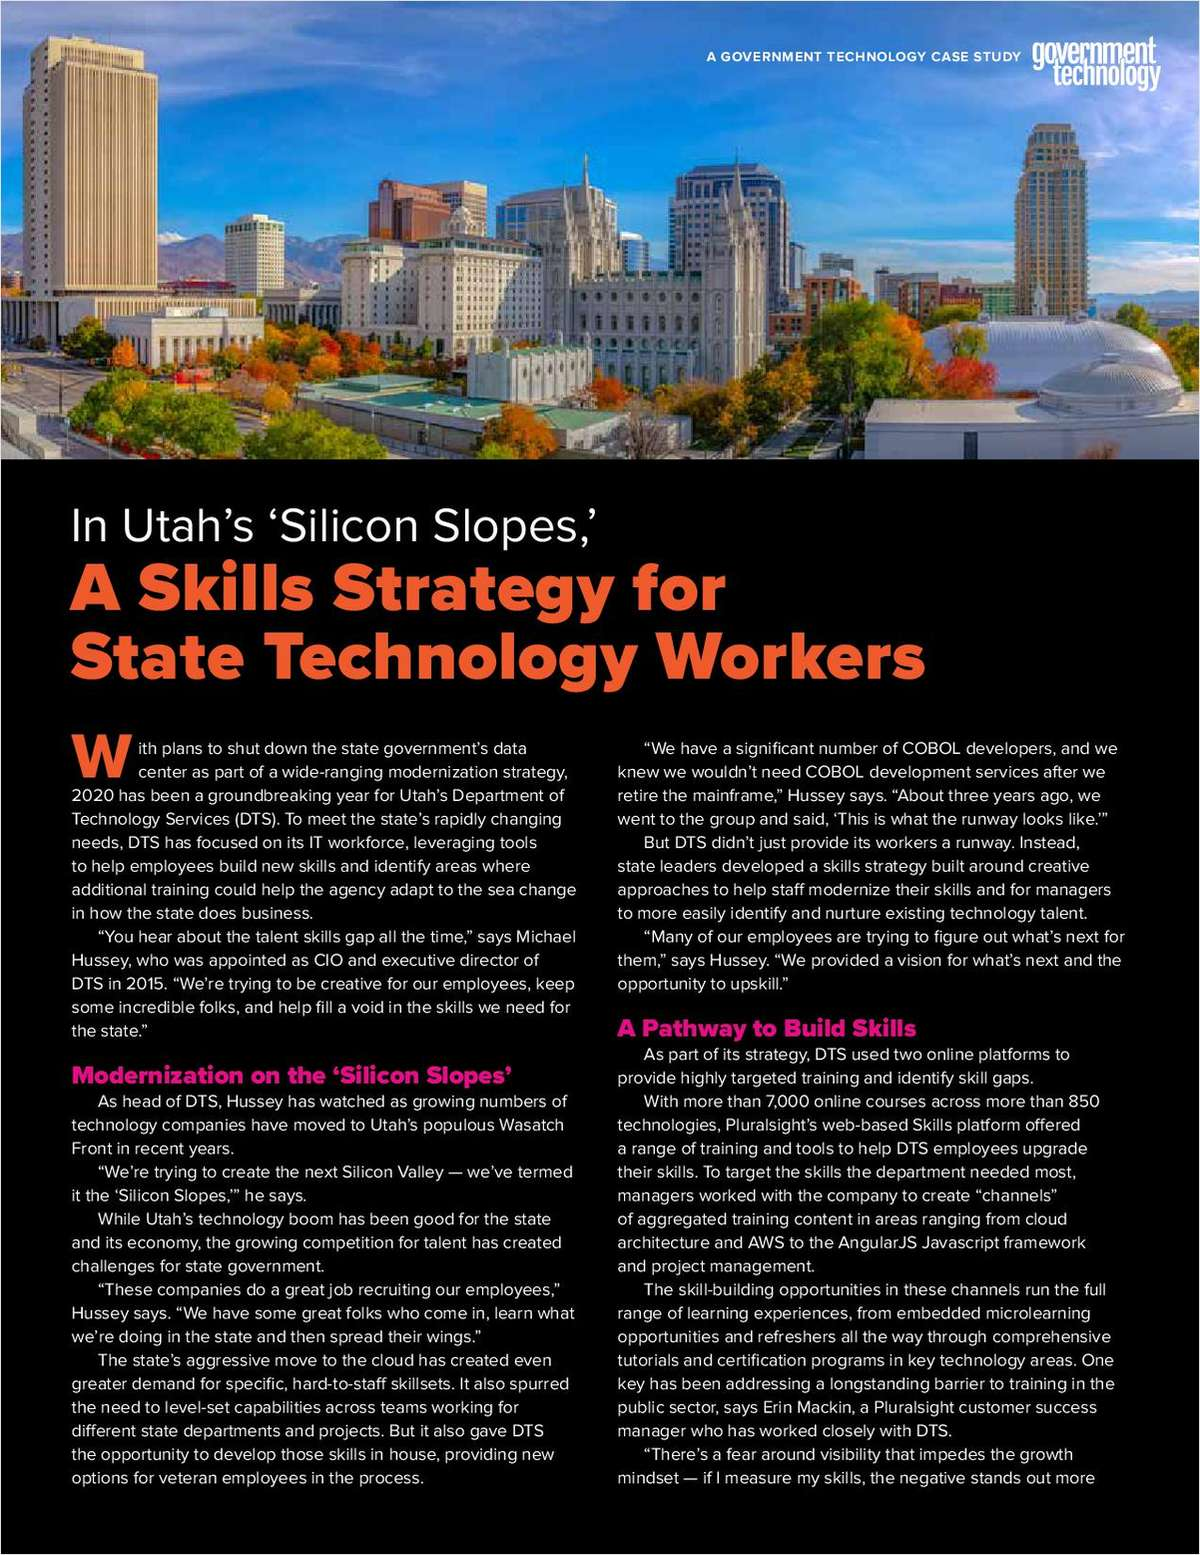 Utah's 'Silicon Slopes': A Skills Strategy for State Technology Workers